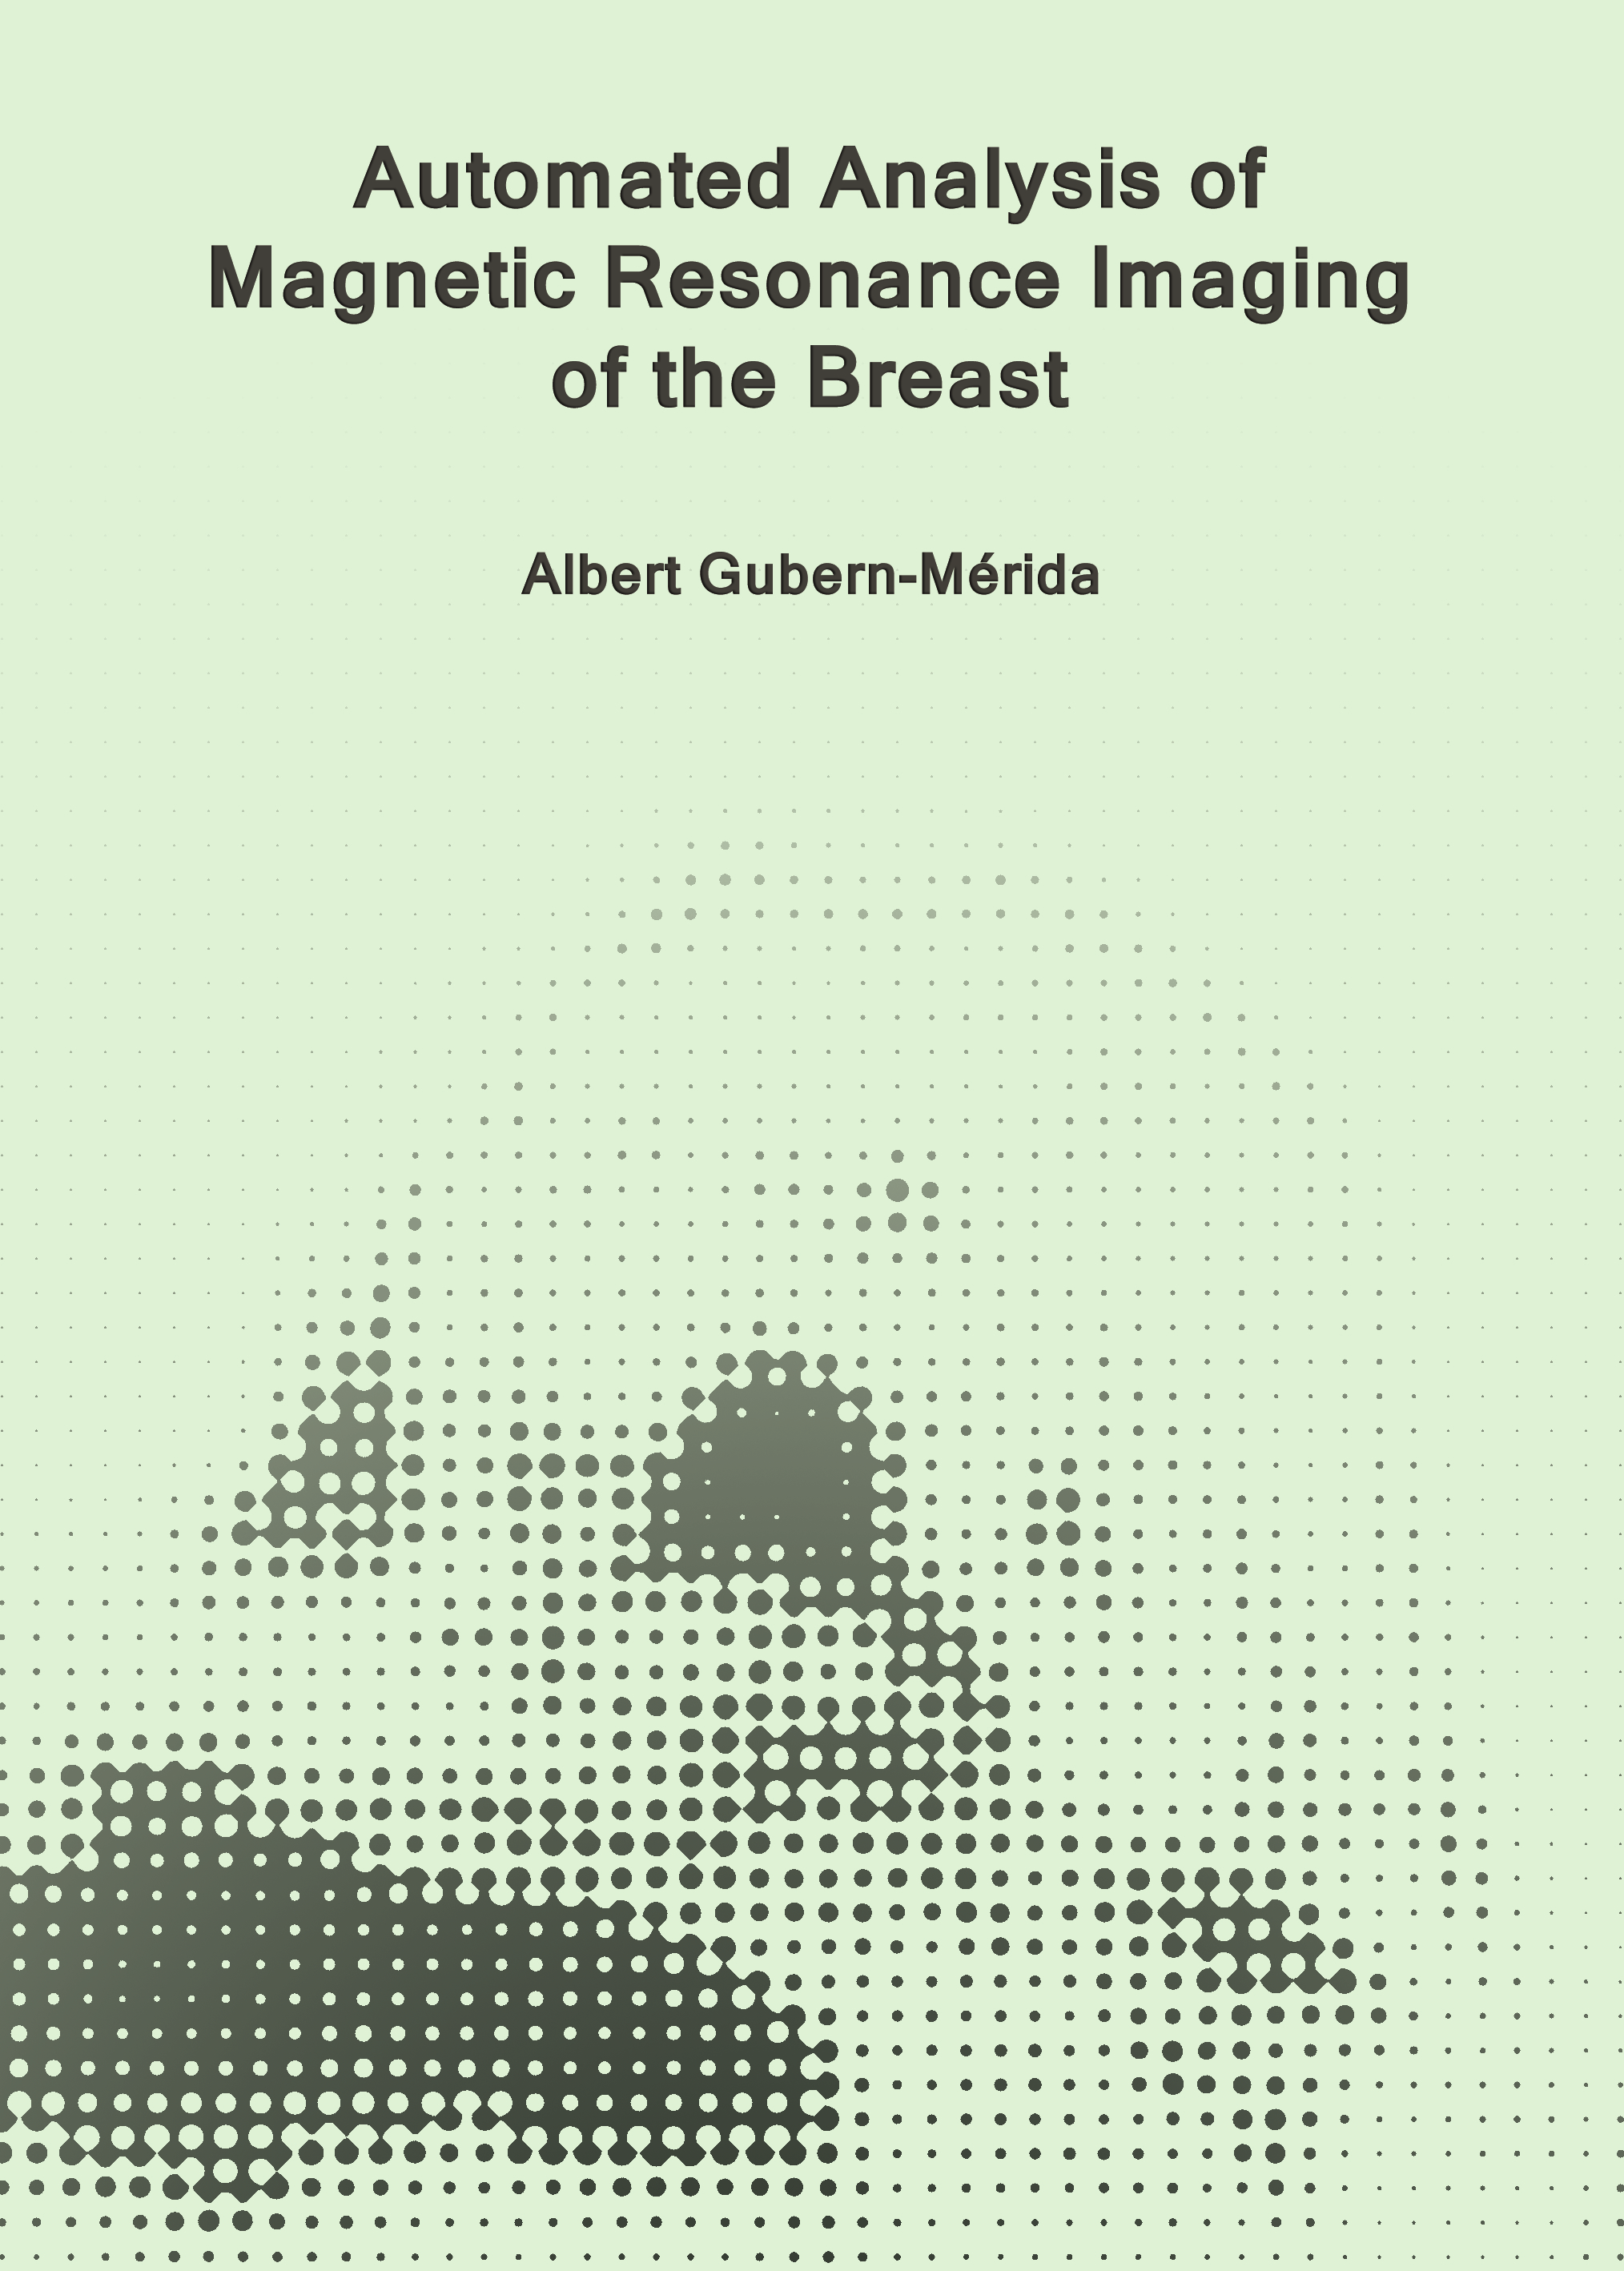 Automated Analysis of Magnetic Resonance Imaging of the Breast